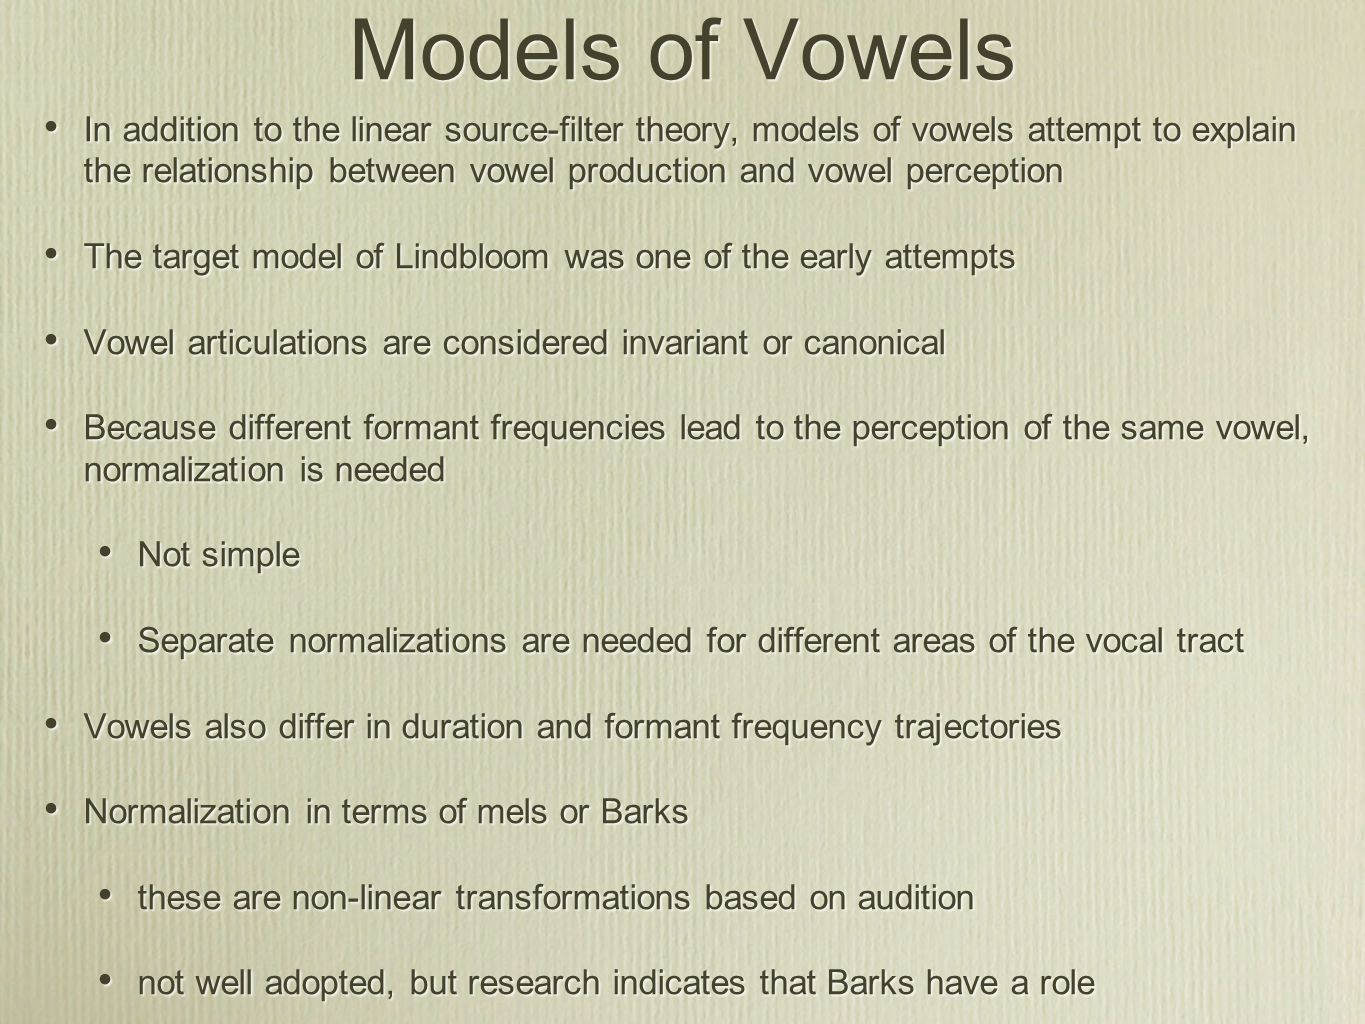 Models of Vowels In addition to the linear source-filter theory, models of vowels attempt to explain the relationship between vowel production and vowel perception The target model of Lindbloom was one of the early attempts Vowel articulations are considered invariant or canonical Because different formant frequencies lead to the perception of the same vowel, normalization is needed Not simple Separate normalizations are needed for different areas of the vocal tract Vowels also differ in duration and formant frequency trajectories Normalization in terms of mels or Barks these are non-linear transformations based on audition not well adopted, but research indicates that Barks have a role In addition to the linear source-filter theory, models of vowels attempt to explain the relationship between vowel production and vowel perception The target model of Lindbloom was one of the early attempts Vowel articulations are considered invariant or canonical Because different formant frequencies lead to the perception of the same vowel, normalization is needed Not simple Separate normalizations are needed for different areas of the vocal tract Vowels also differ in duration and formant frequency trajectories Normalization in terms of mels or Barks these are non-linear transformations based on audition not well adopted, but research indicates that Barks have a role